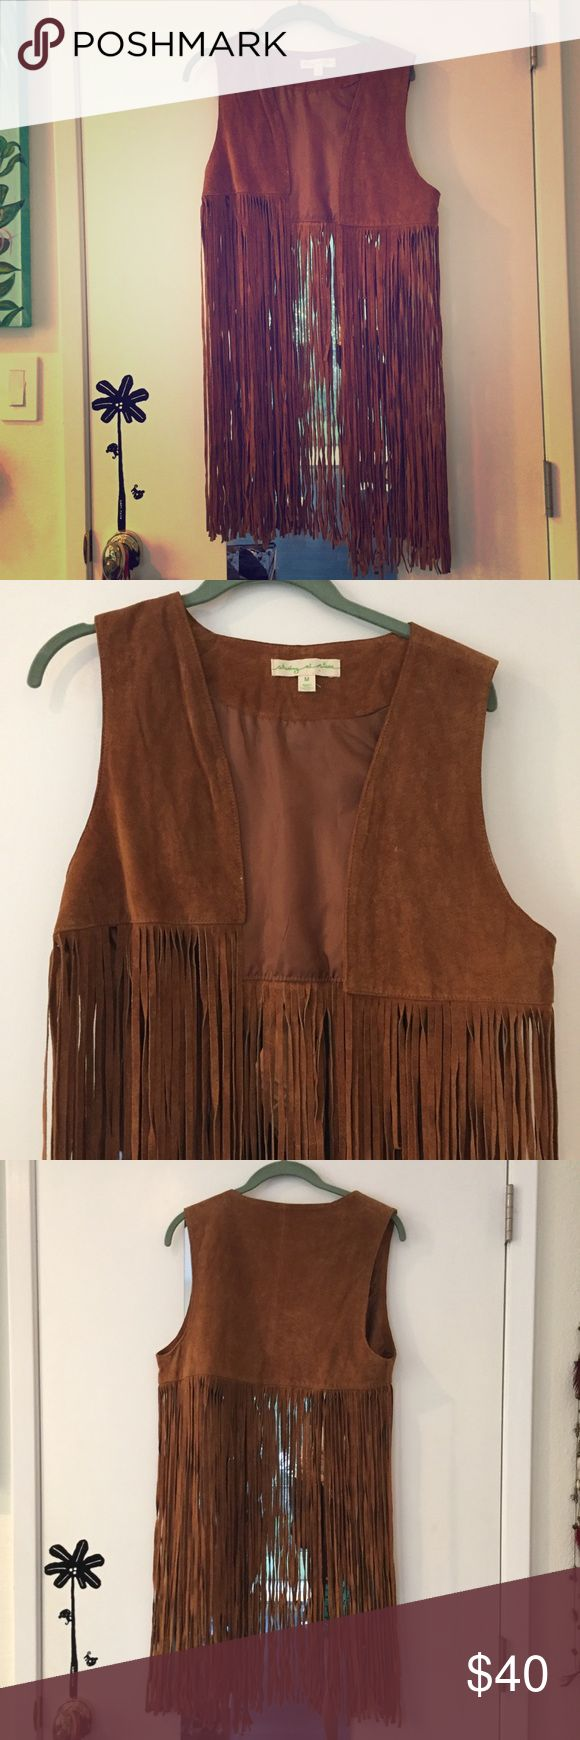 🚫SOLD🚫Staring at Stars boho fringe vest Perfect for festivals or just to the beach, pair it with some jean shorts and a bathing top and you're good to go! From urban outfitters, retailed for $80. Urban Outfitters Jackets & Coats